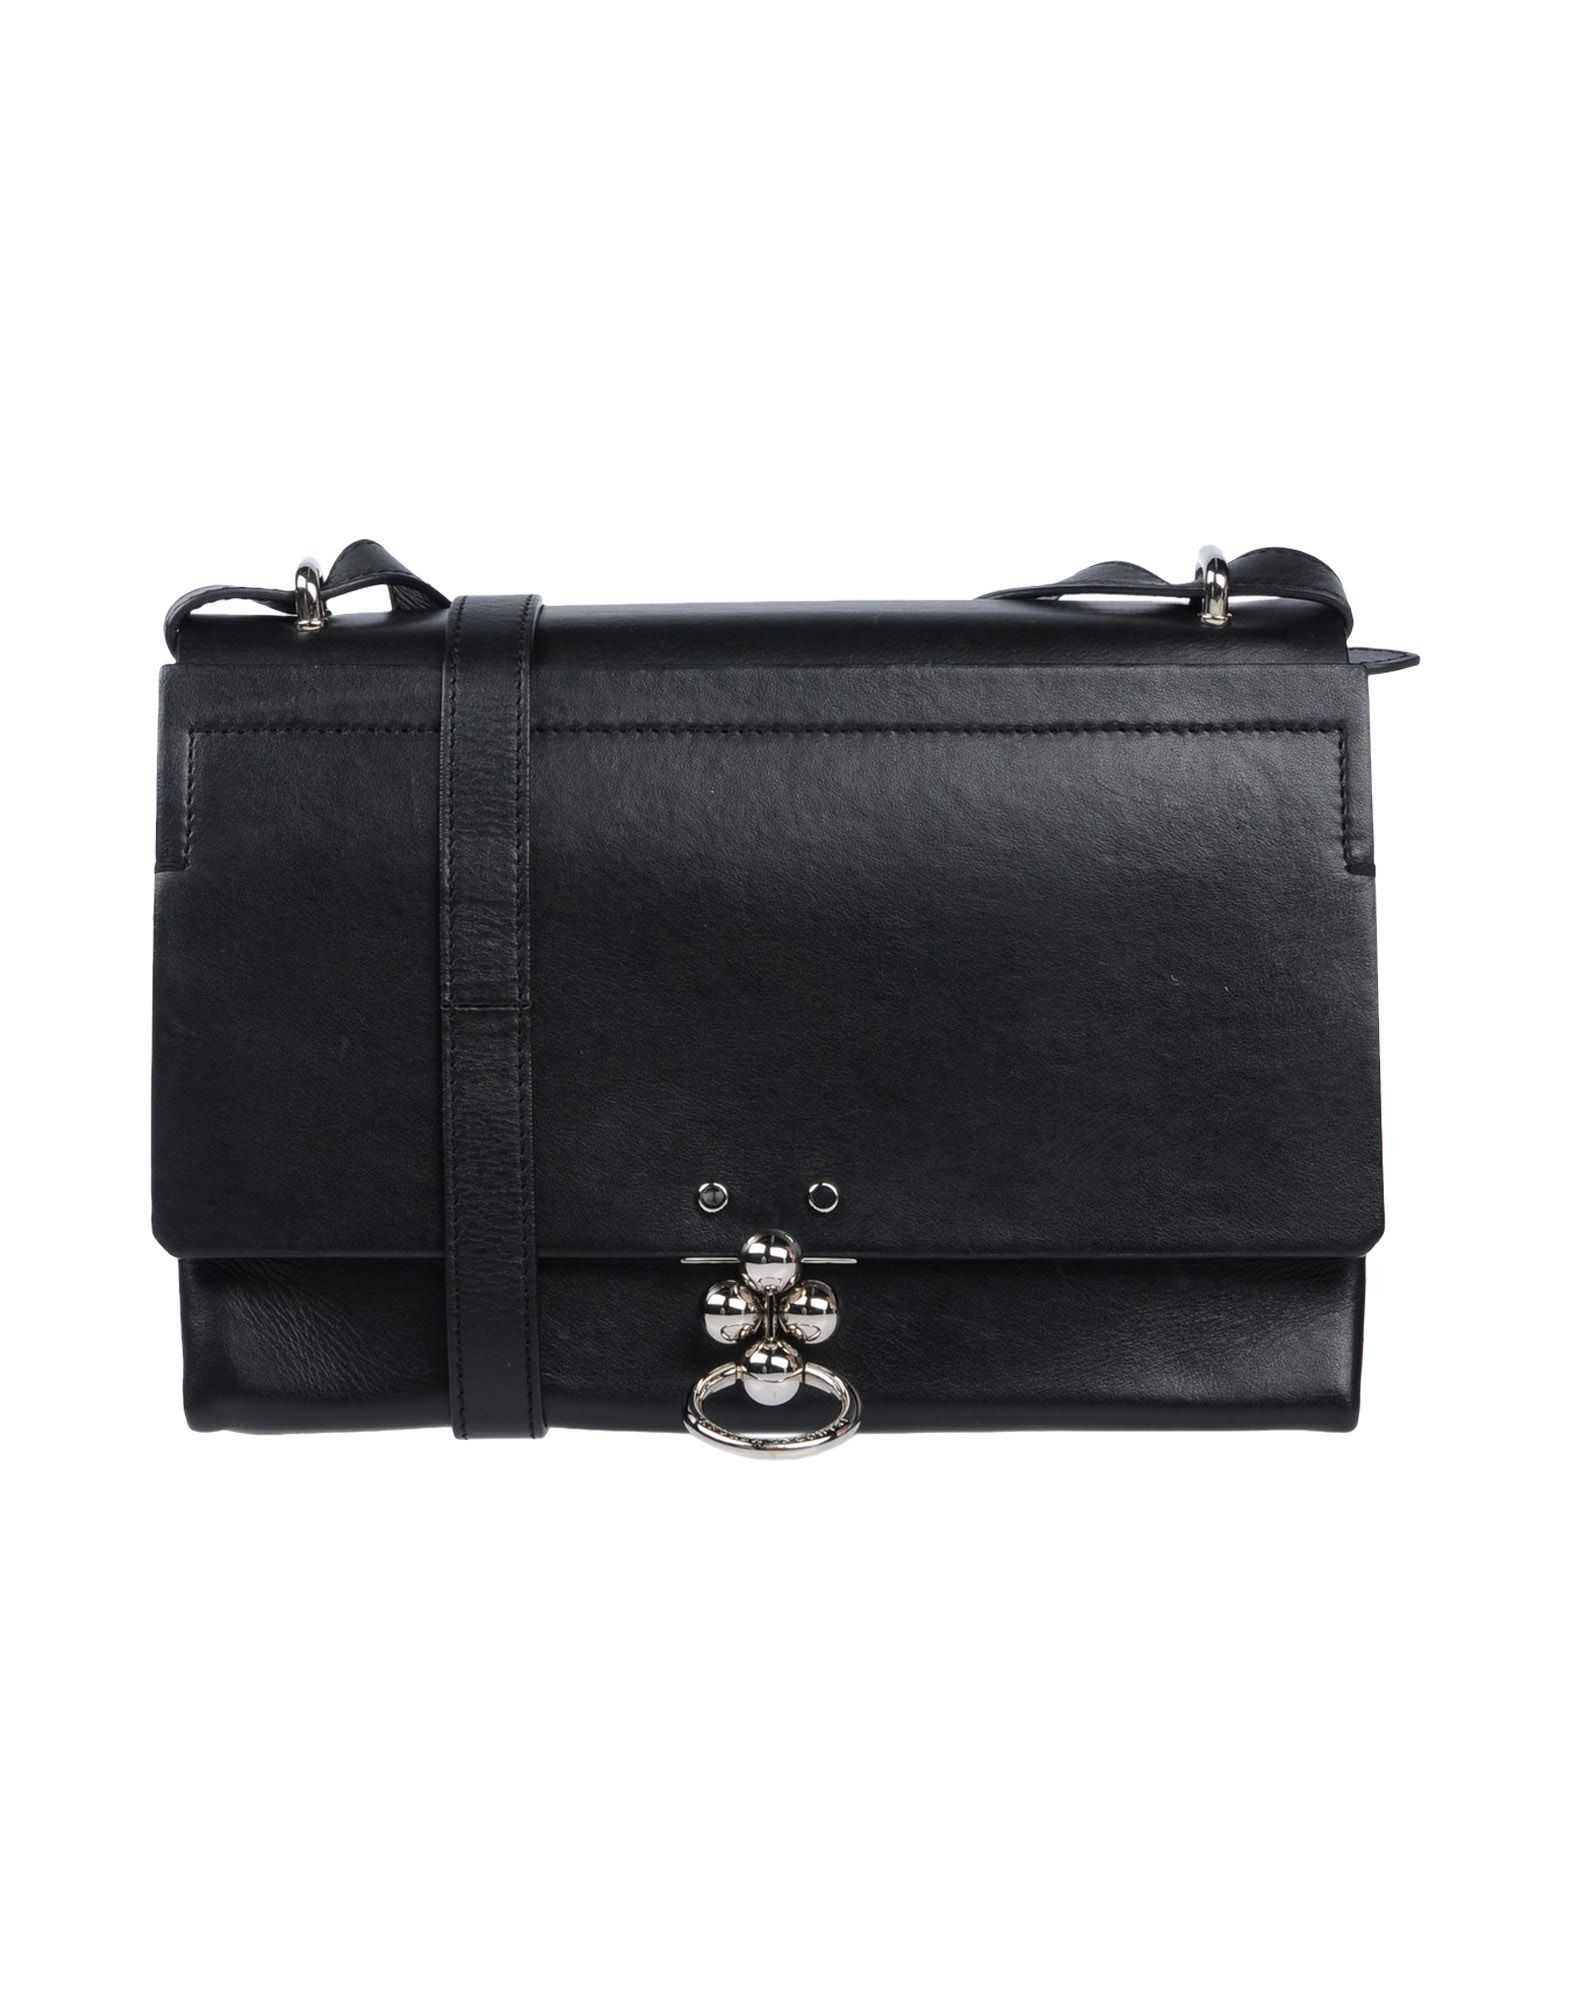 ANDREA INCONTRI Cross-Body Bags in Black